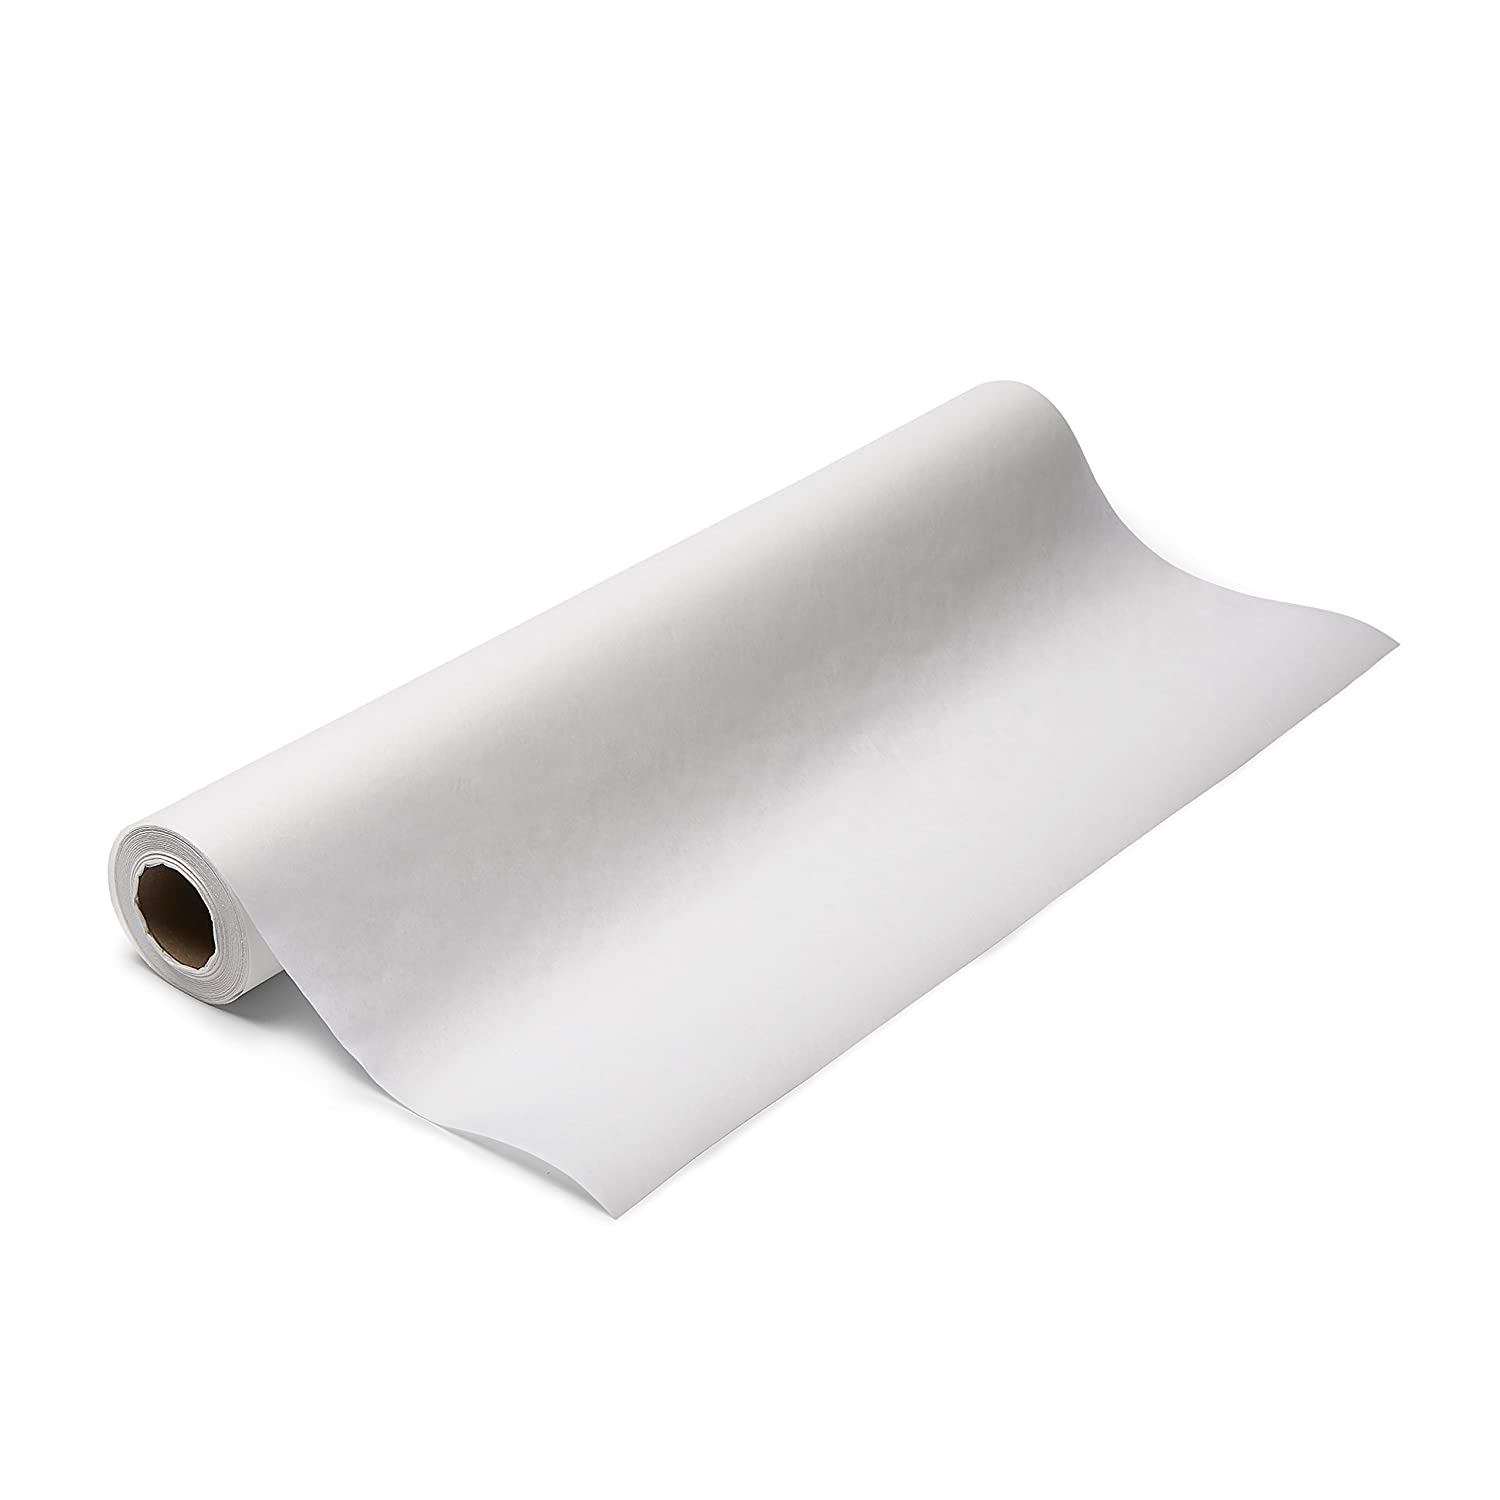 Amazon.com: Medline NON18200 Standard Smooth Exam Table Paper ...